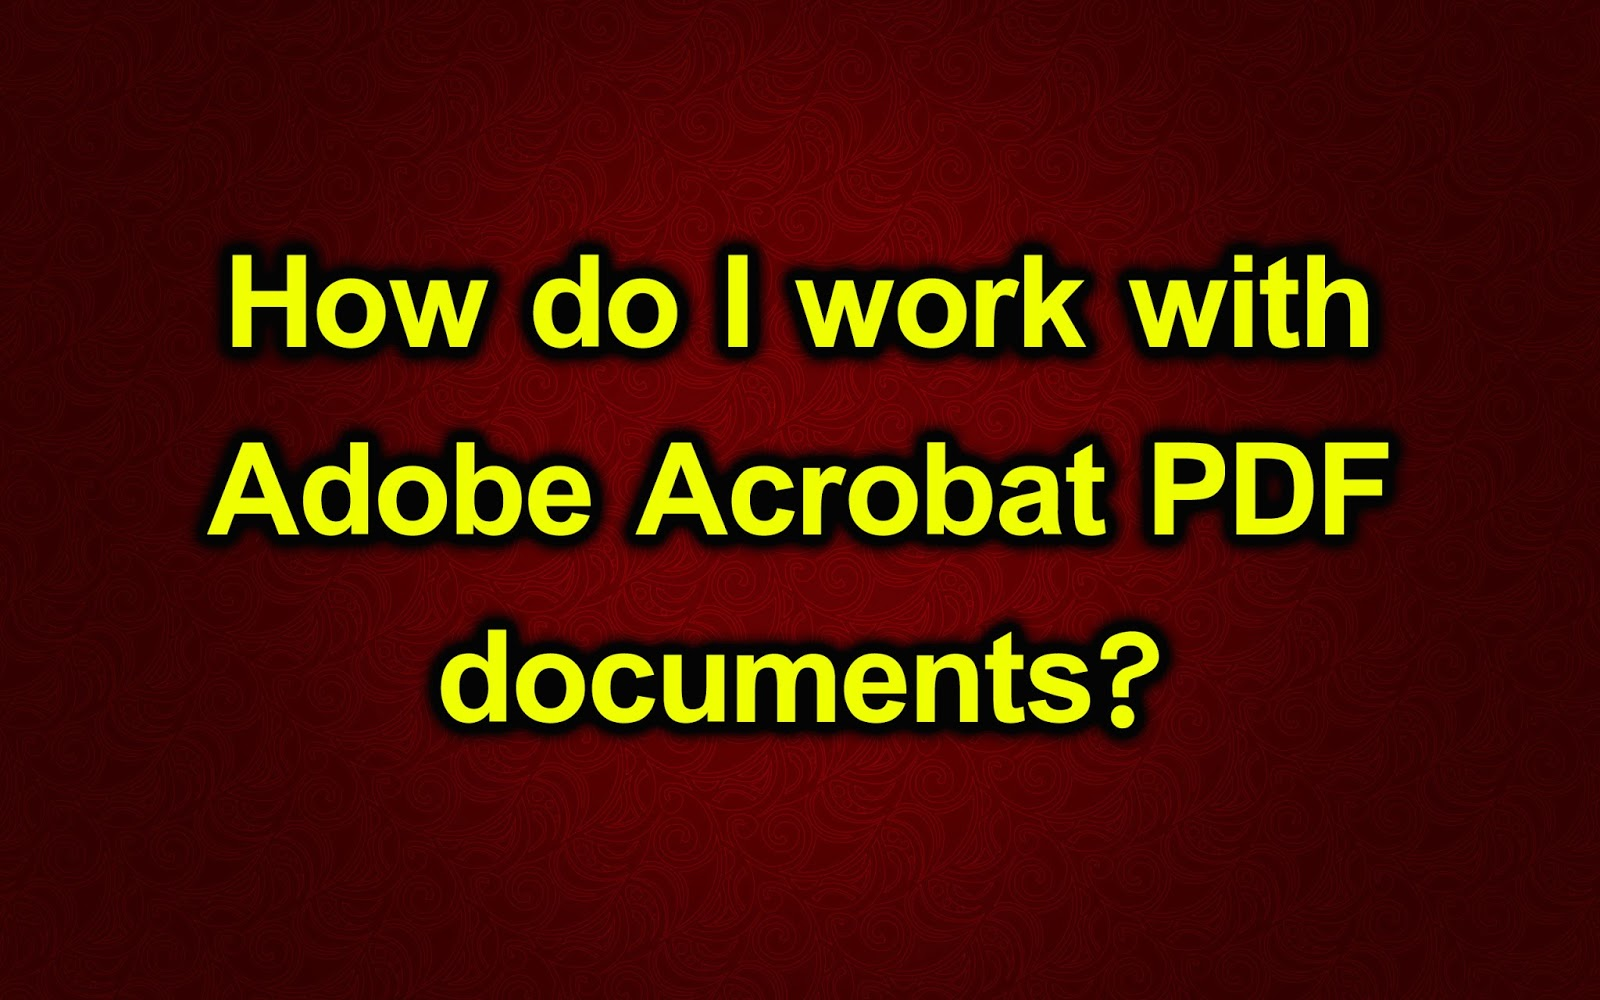 How do I work with Adobe Acrobat PDF documents? - Blue Prism